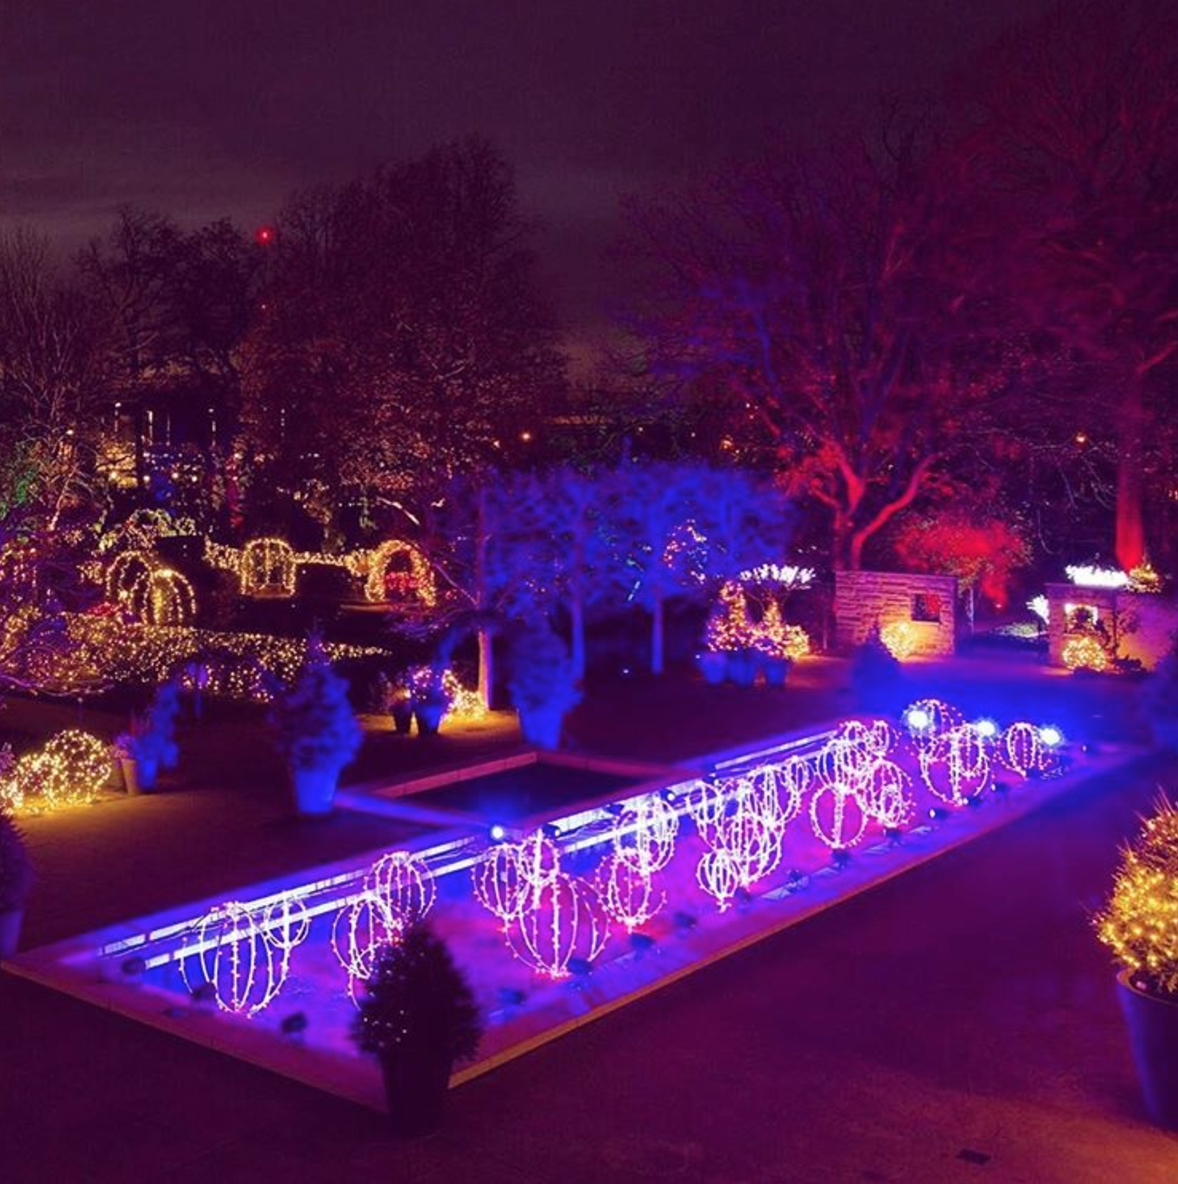 Photo by @clegarden at Glow at the Cleveland Botanical Garden in Cleveland, Ohio